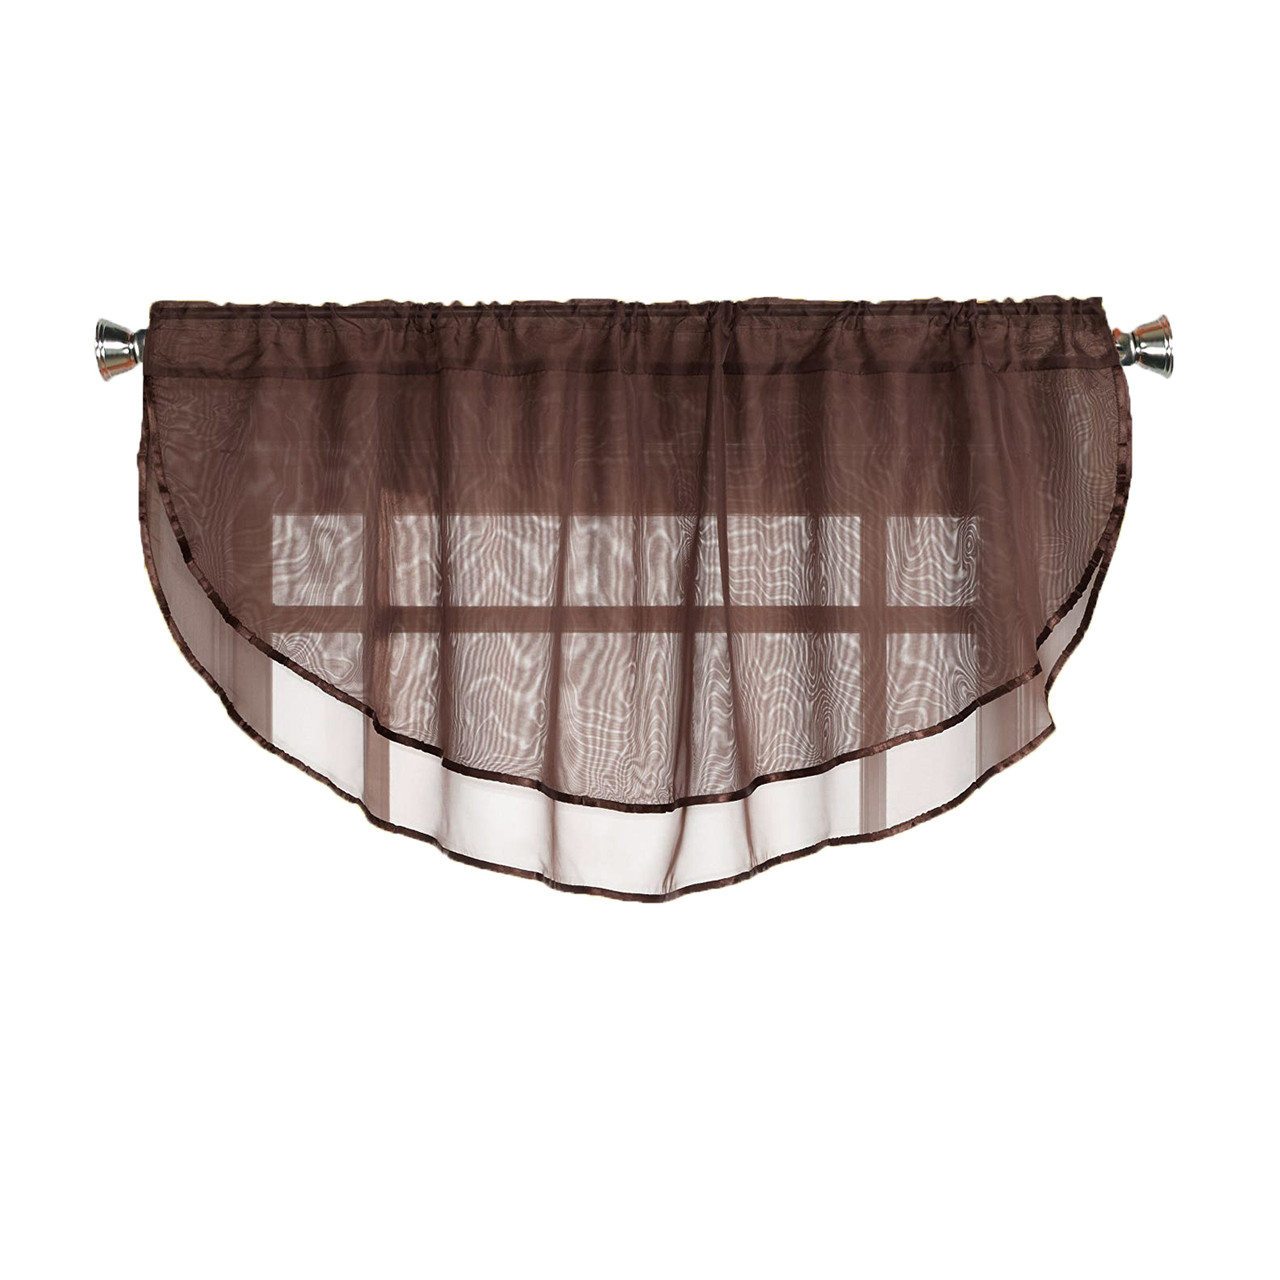 Sheer Voile Valance Curtain For Windows Size 54 In X 24 In Scalloped With Ribbon For Kitchens Living Room Dining Room Bathroom Bay Windows